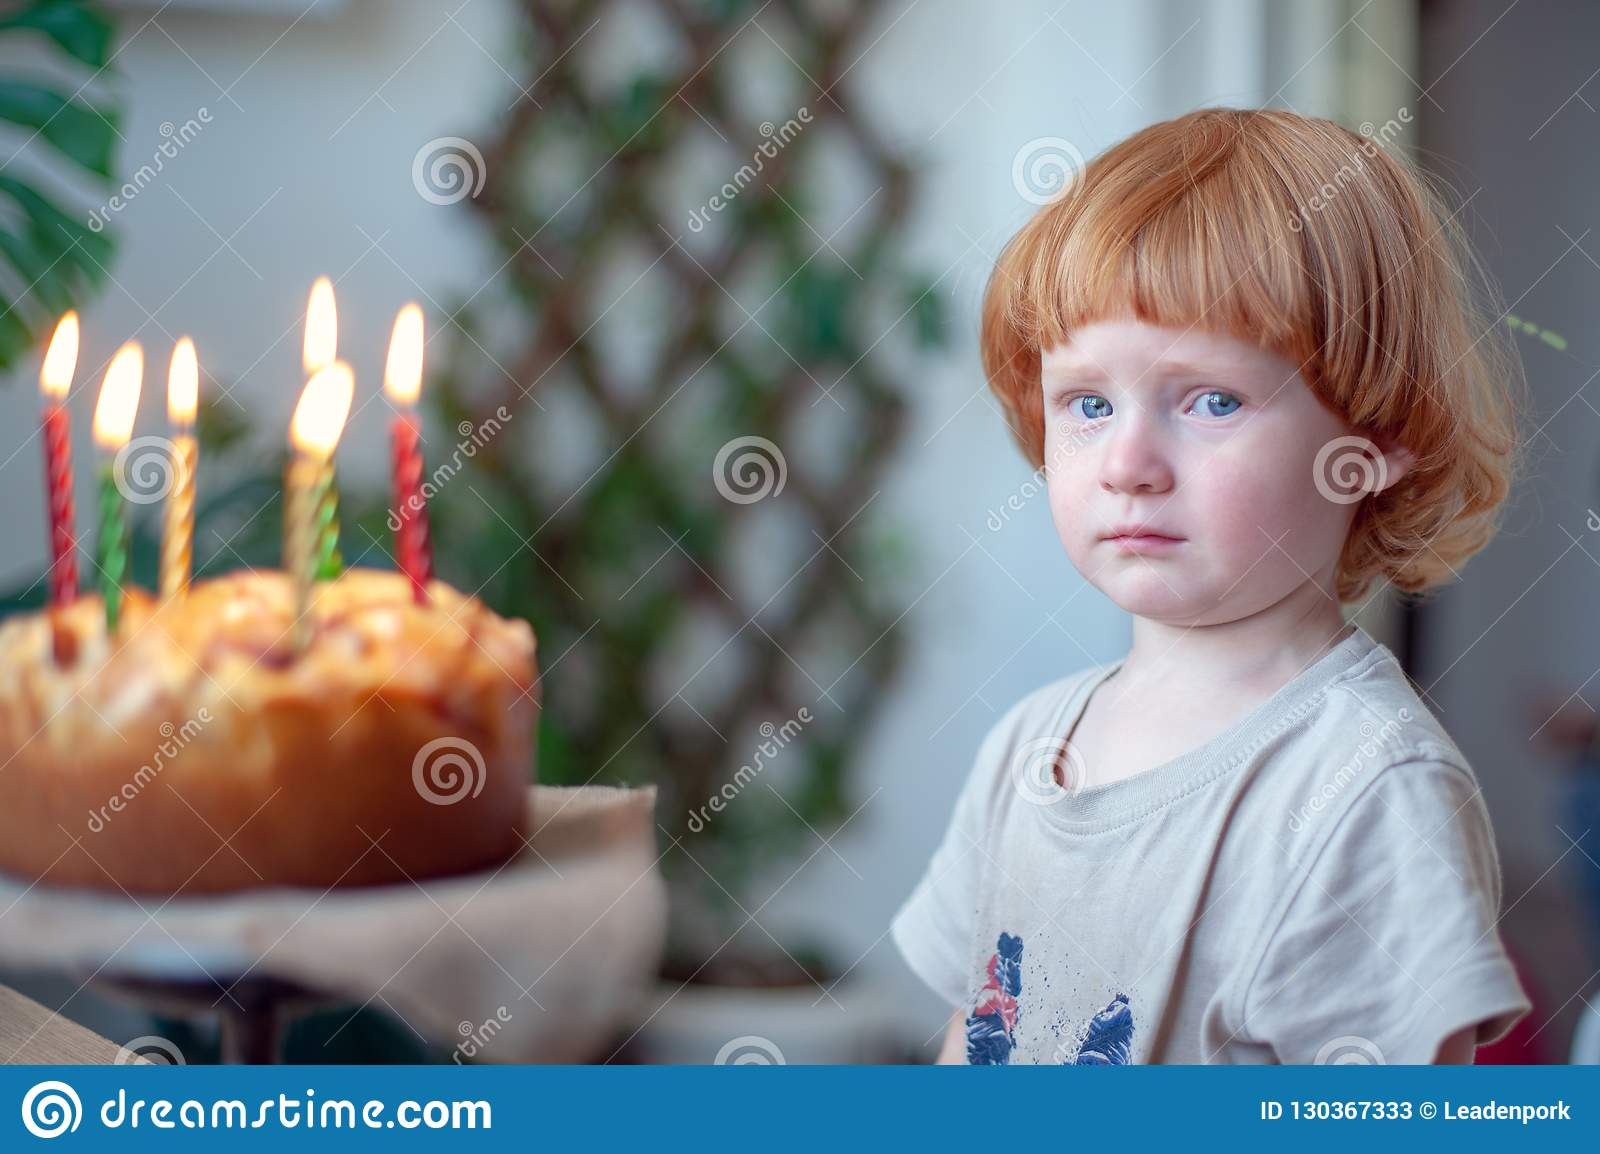 Boy With Tears In His Eyes Can Not Blow Out The Candles On Cake